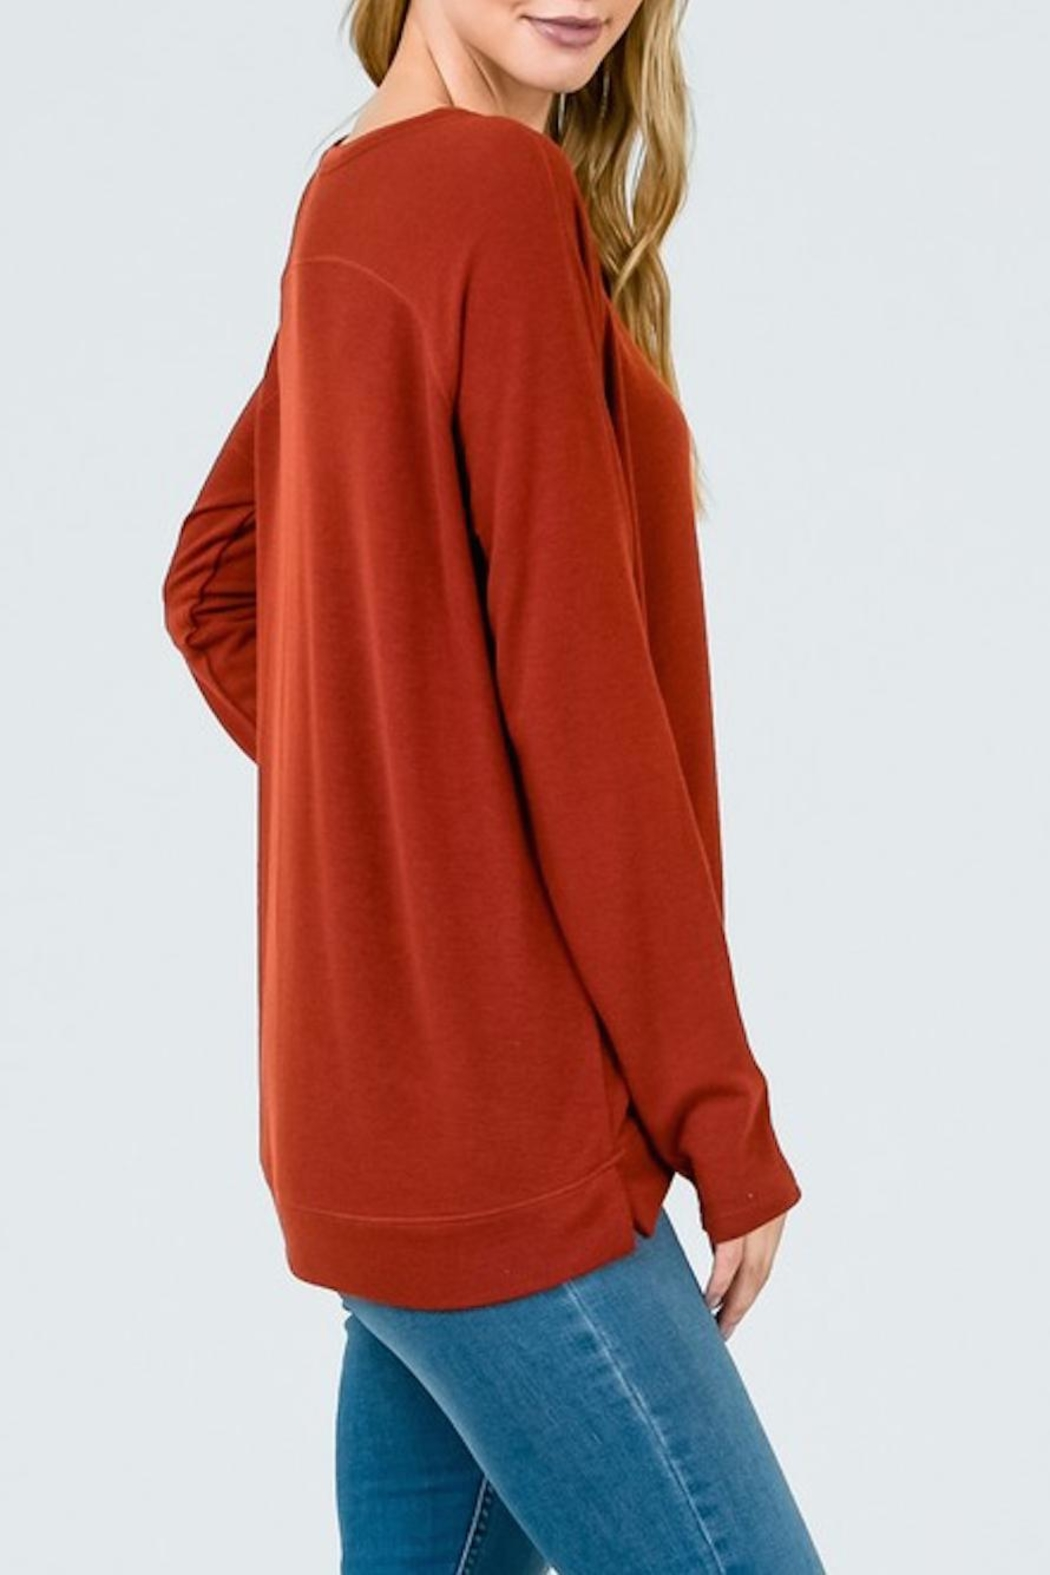 Lumiere Rust Crewneck Top - Side Cropped Image